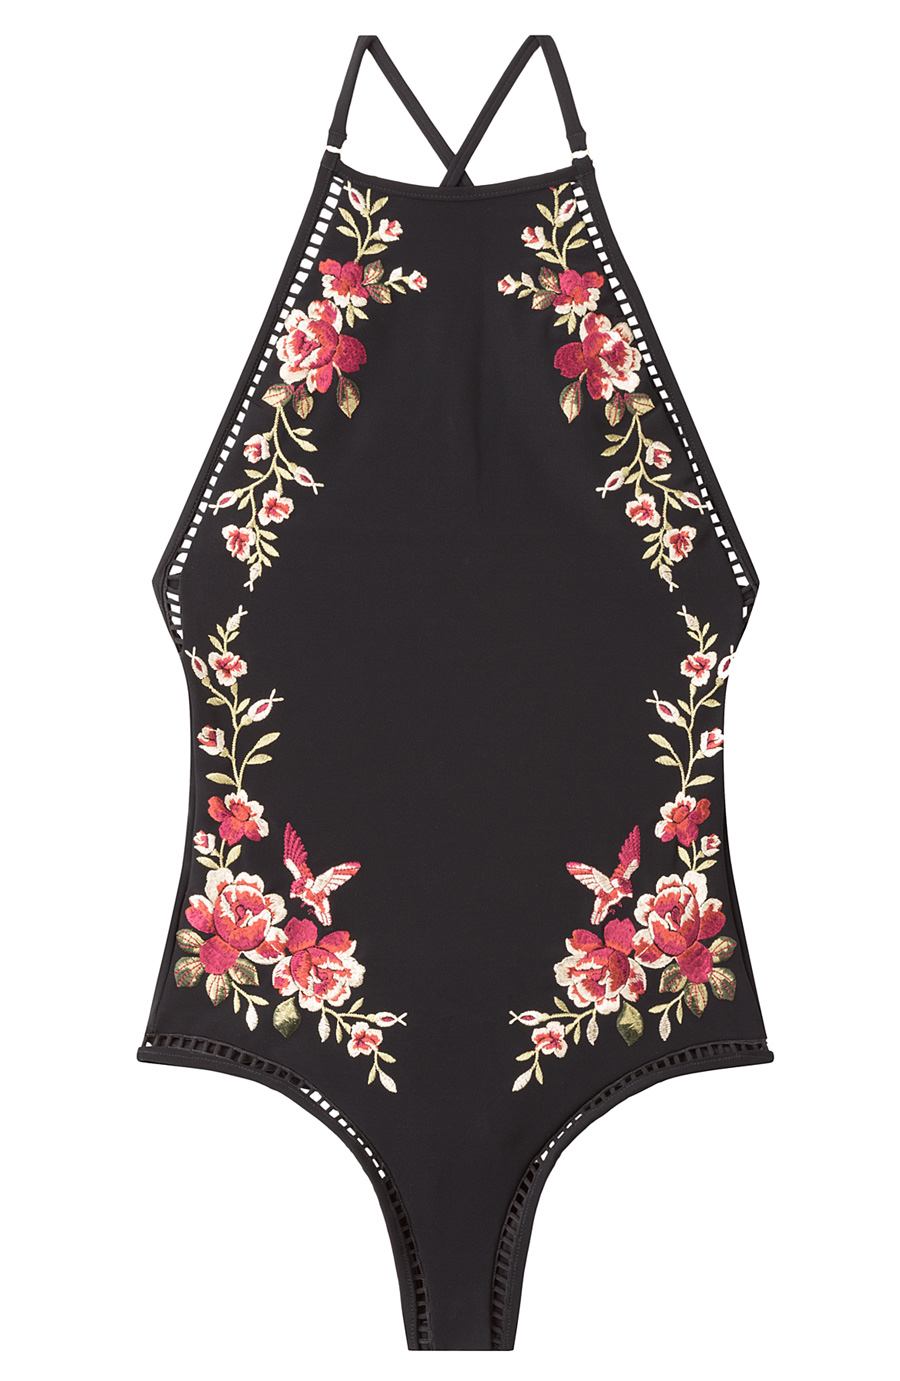 ZIMMERMAN FLORAL EMBROIDERED ONE PIECE